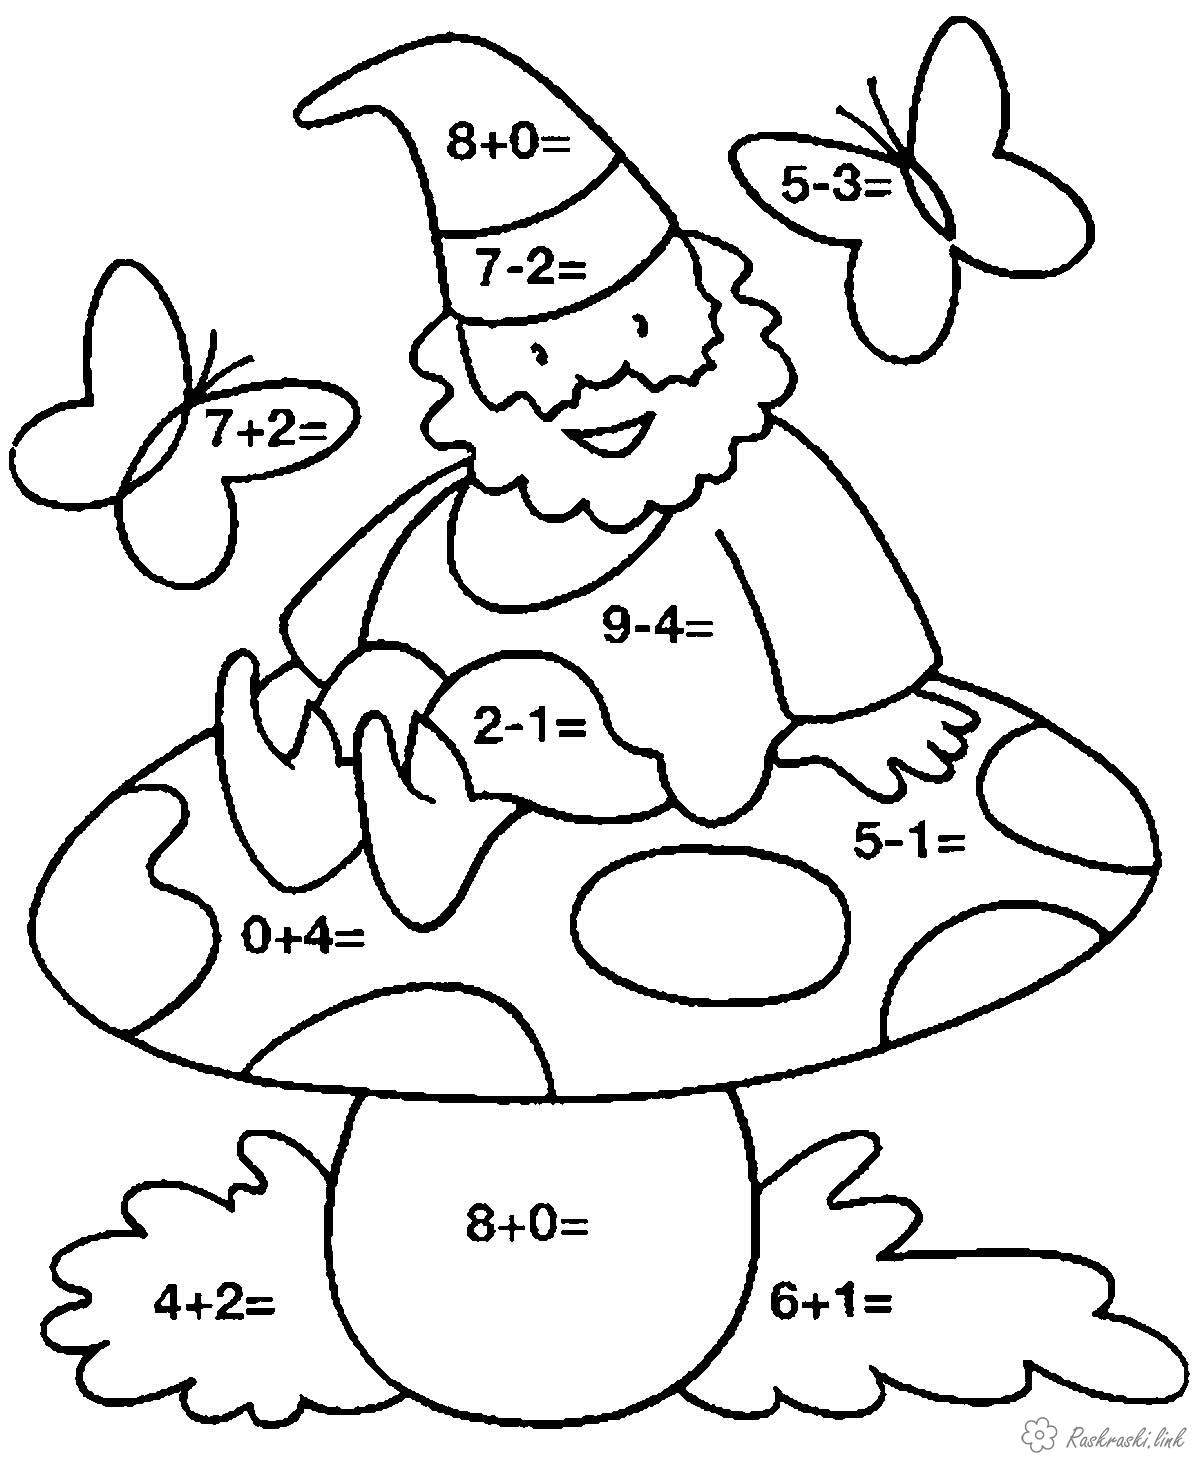 Coloring coloring pages Math Grade 1 Gnome sitting on a mushroom, flying butterflies, mathematical coloring pages